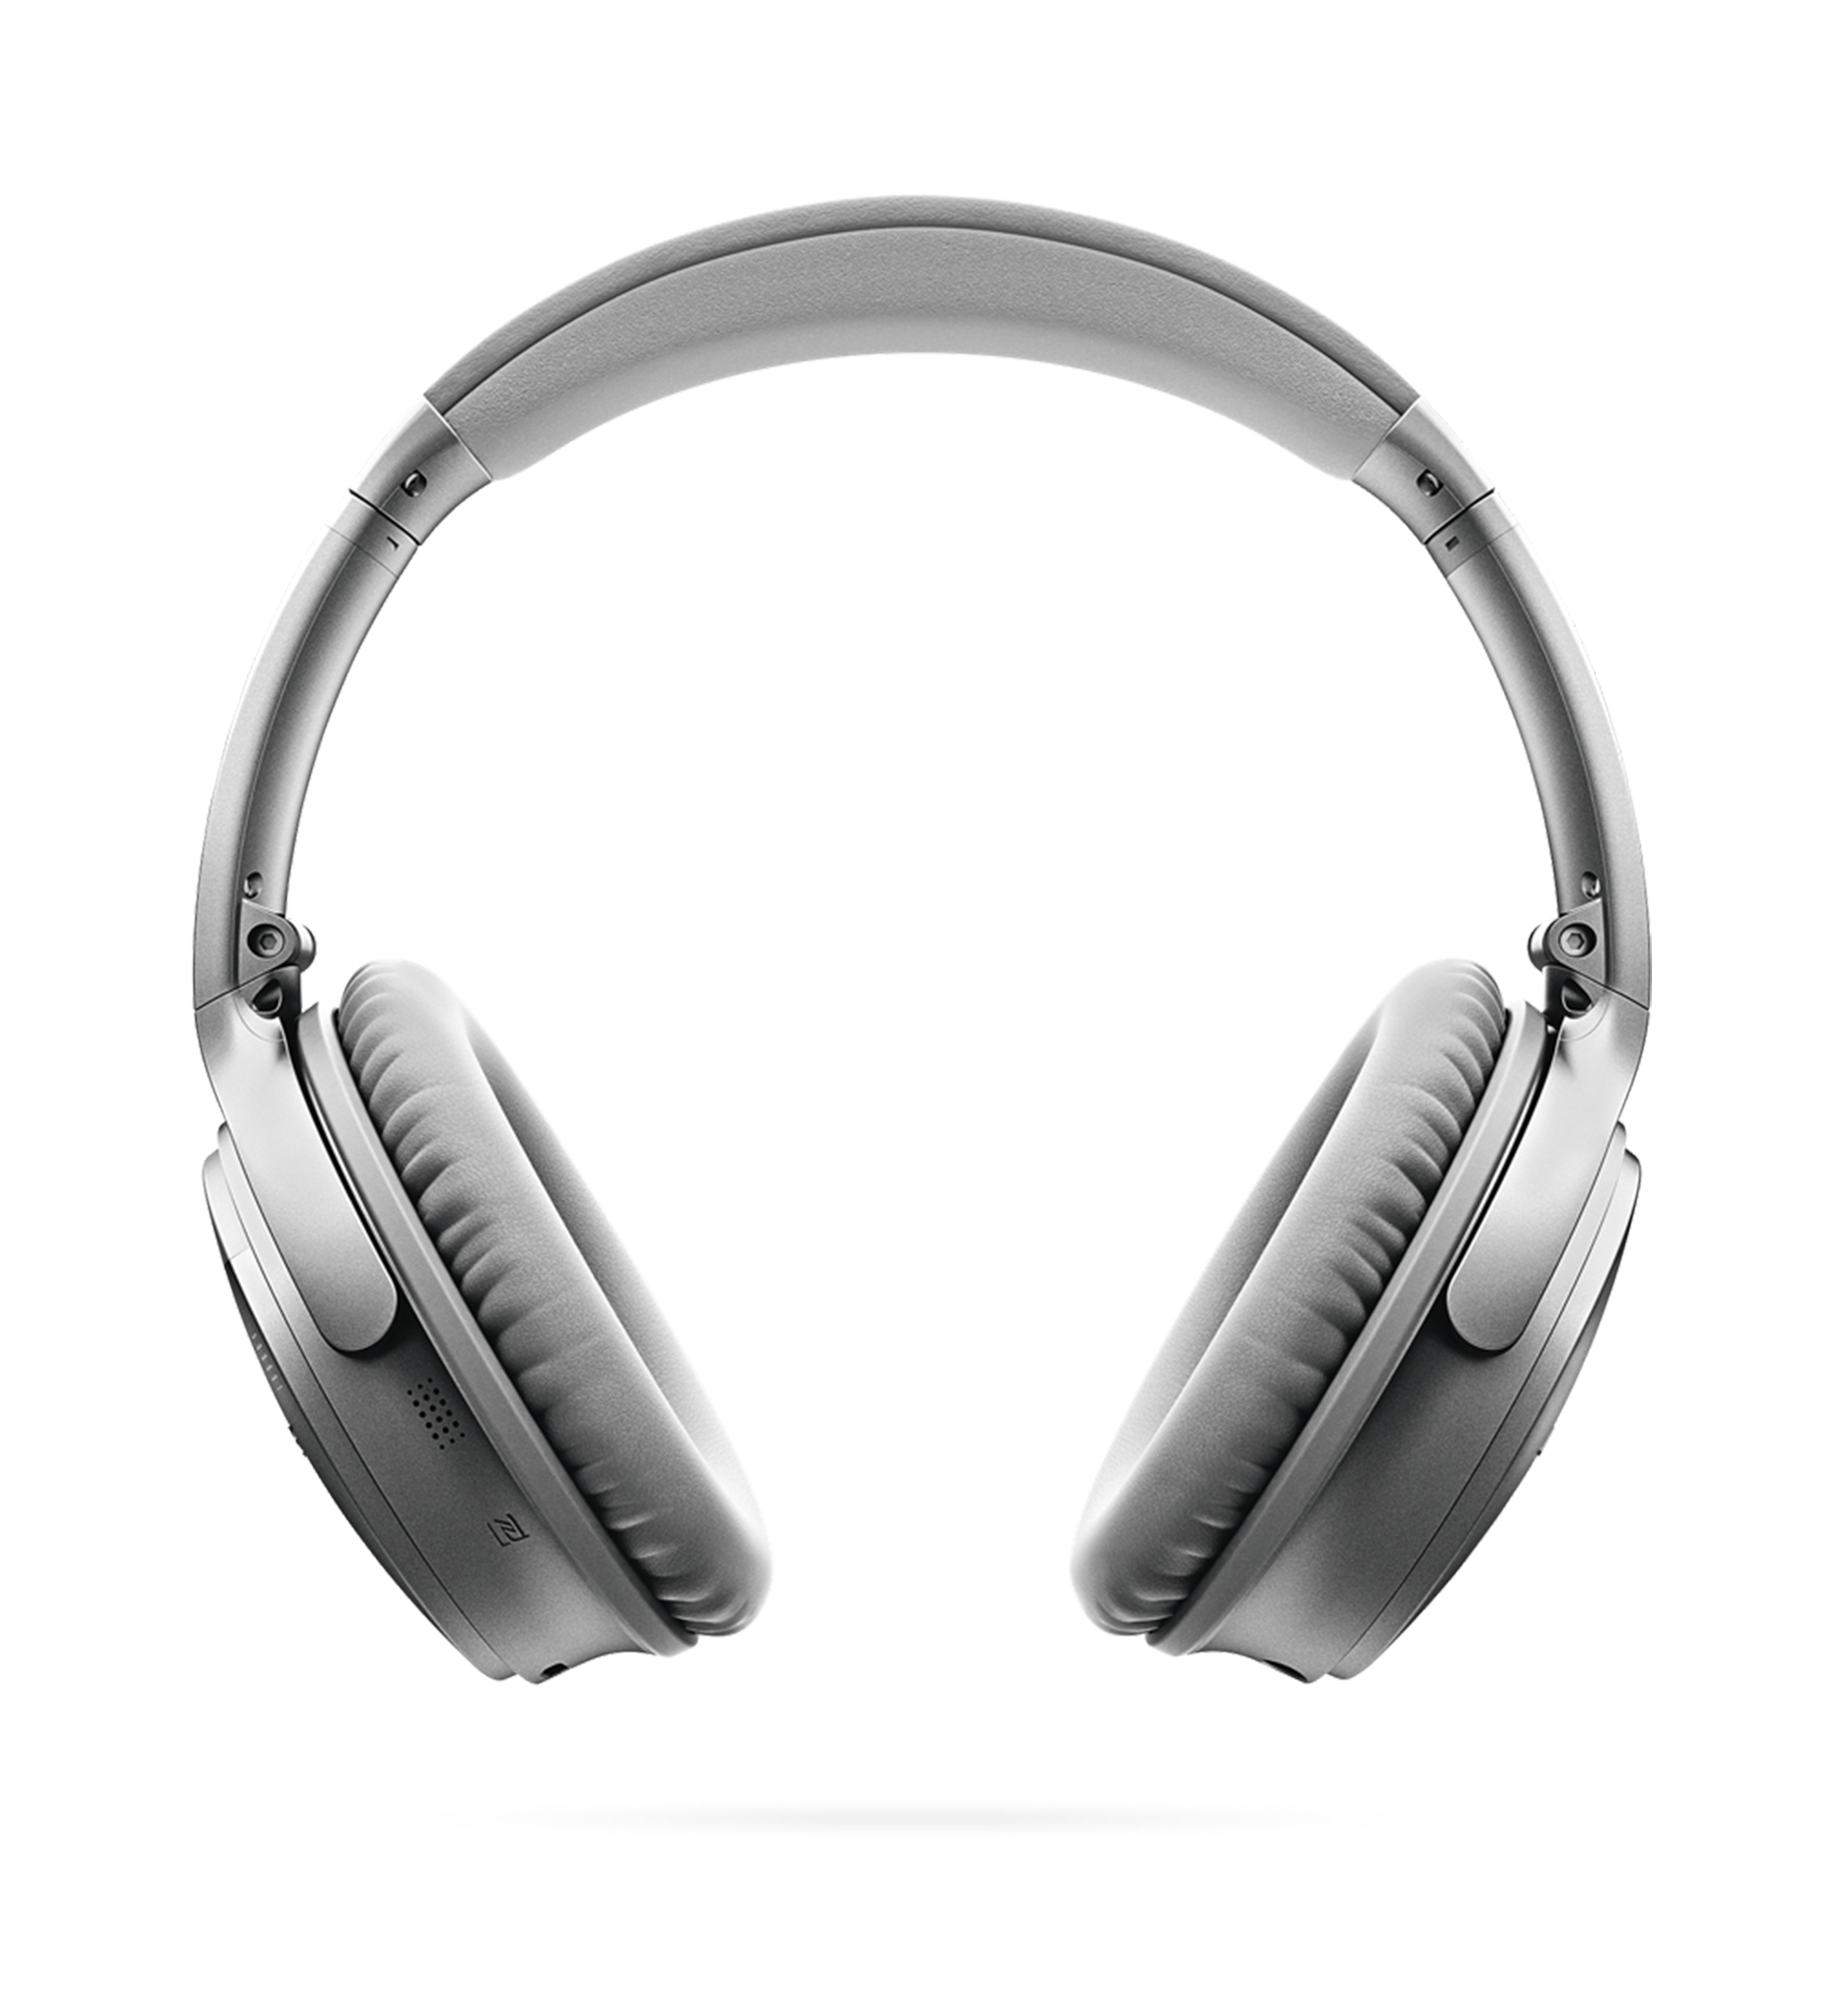 Bose Noise Cancelling Best Headphones 2017 Sexiest Gaming And Wireless